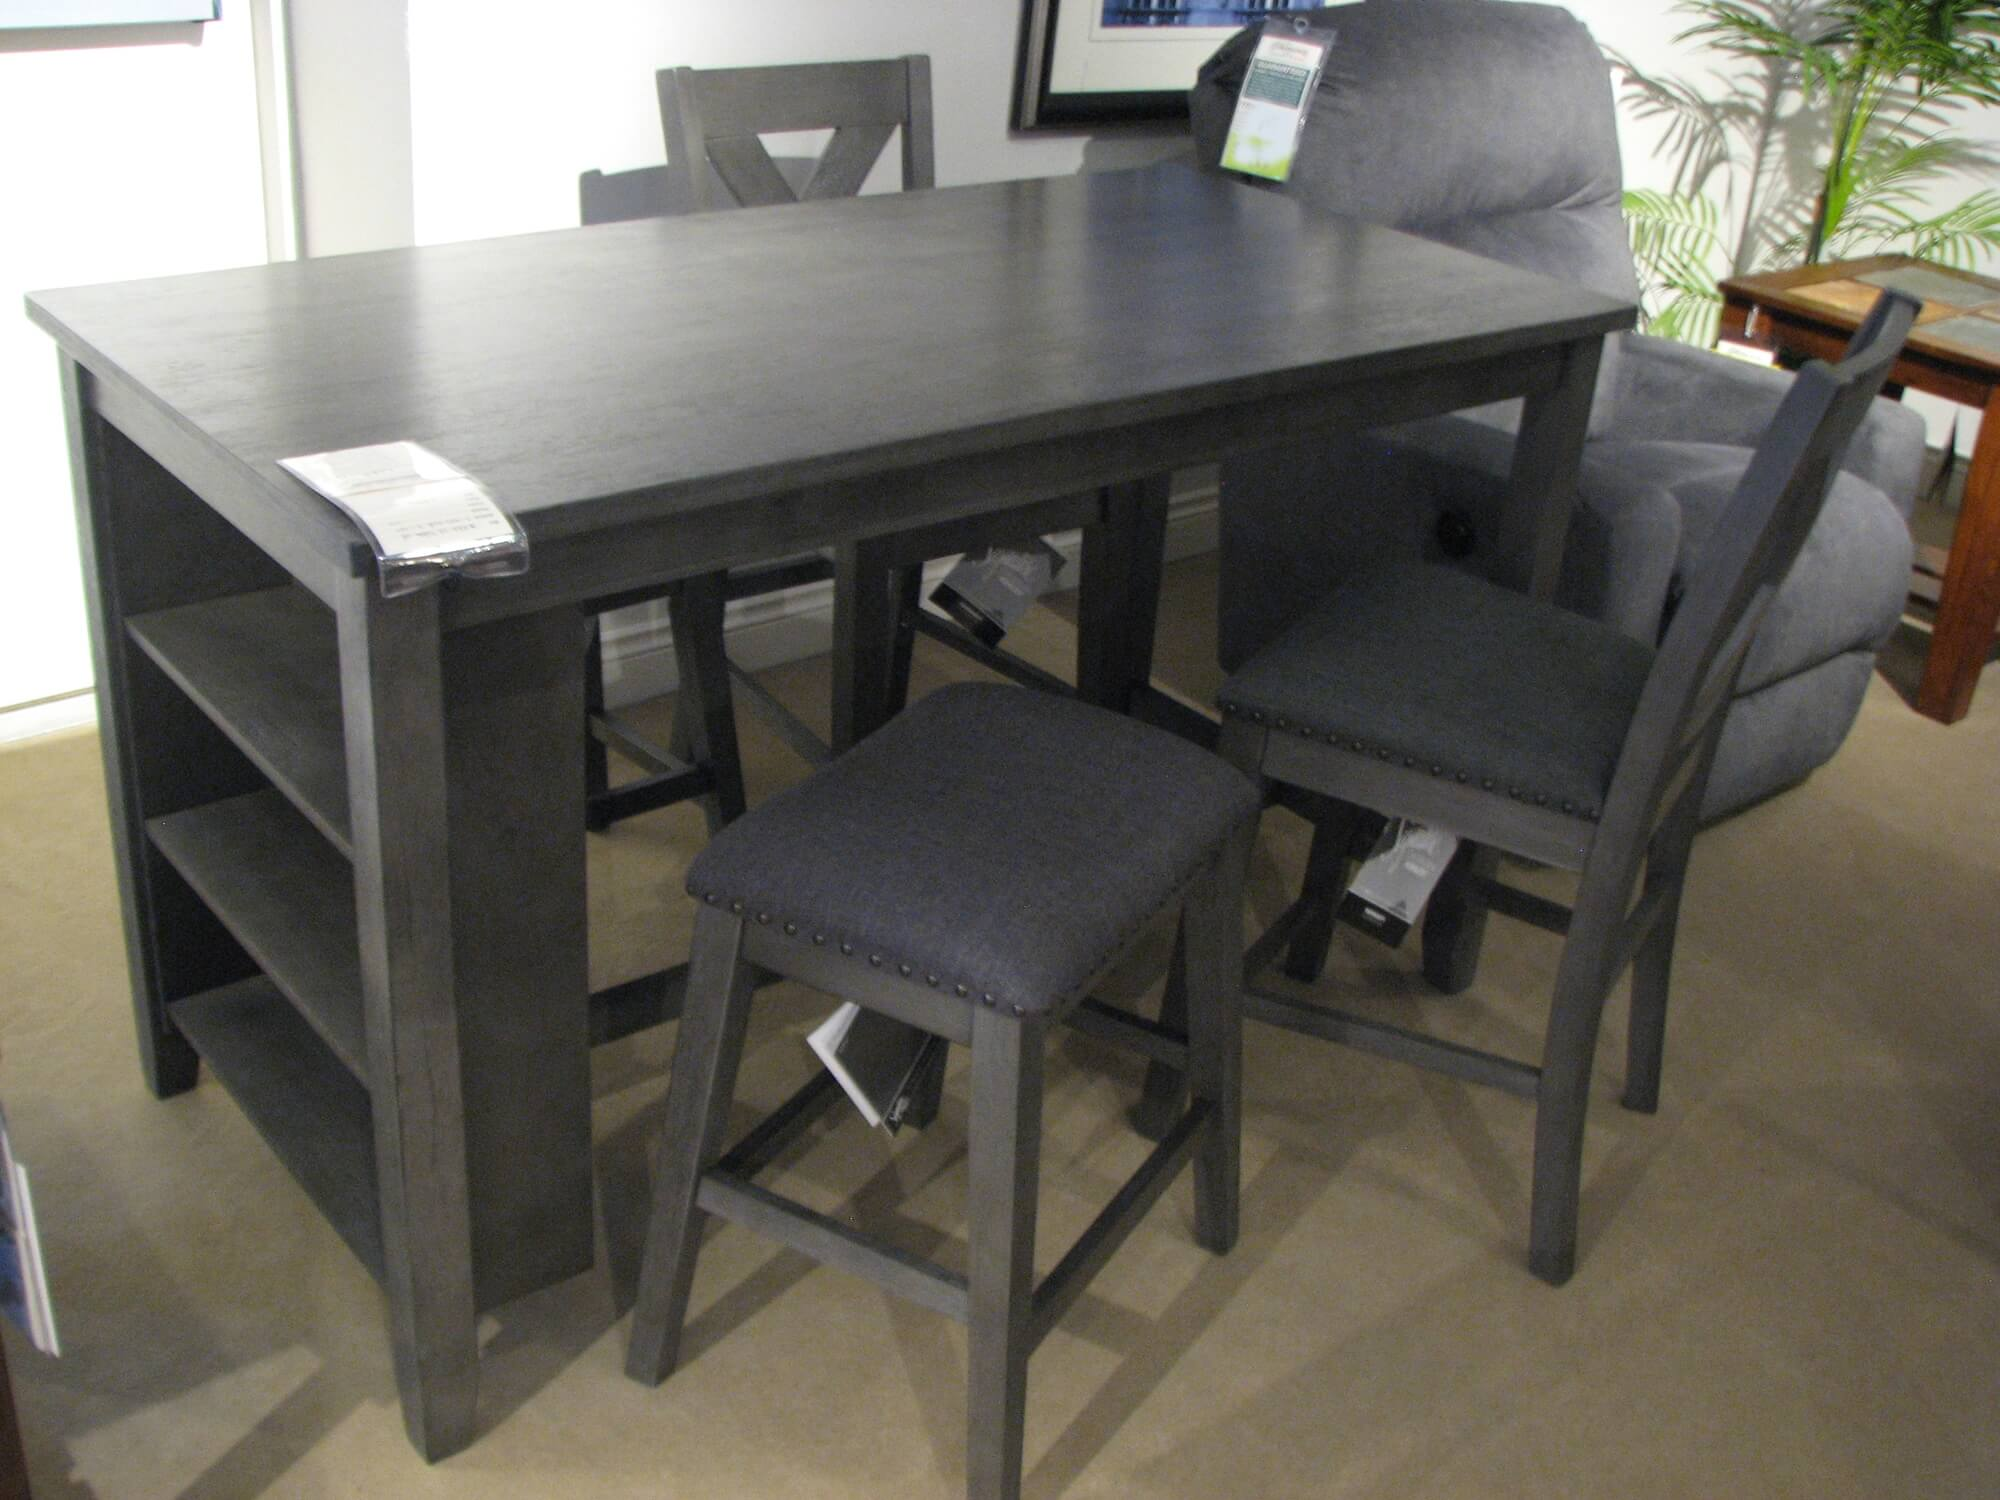 Dining Room Furniture Kalamazoo, Dining Room Table With Storage